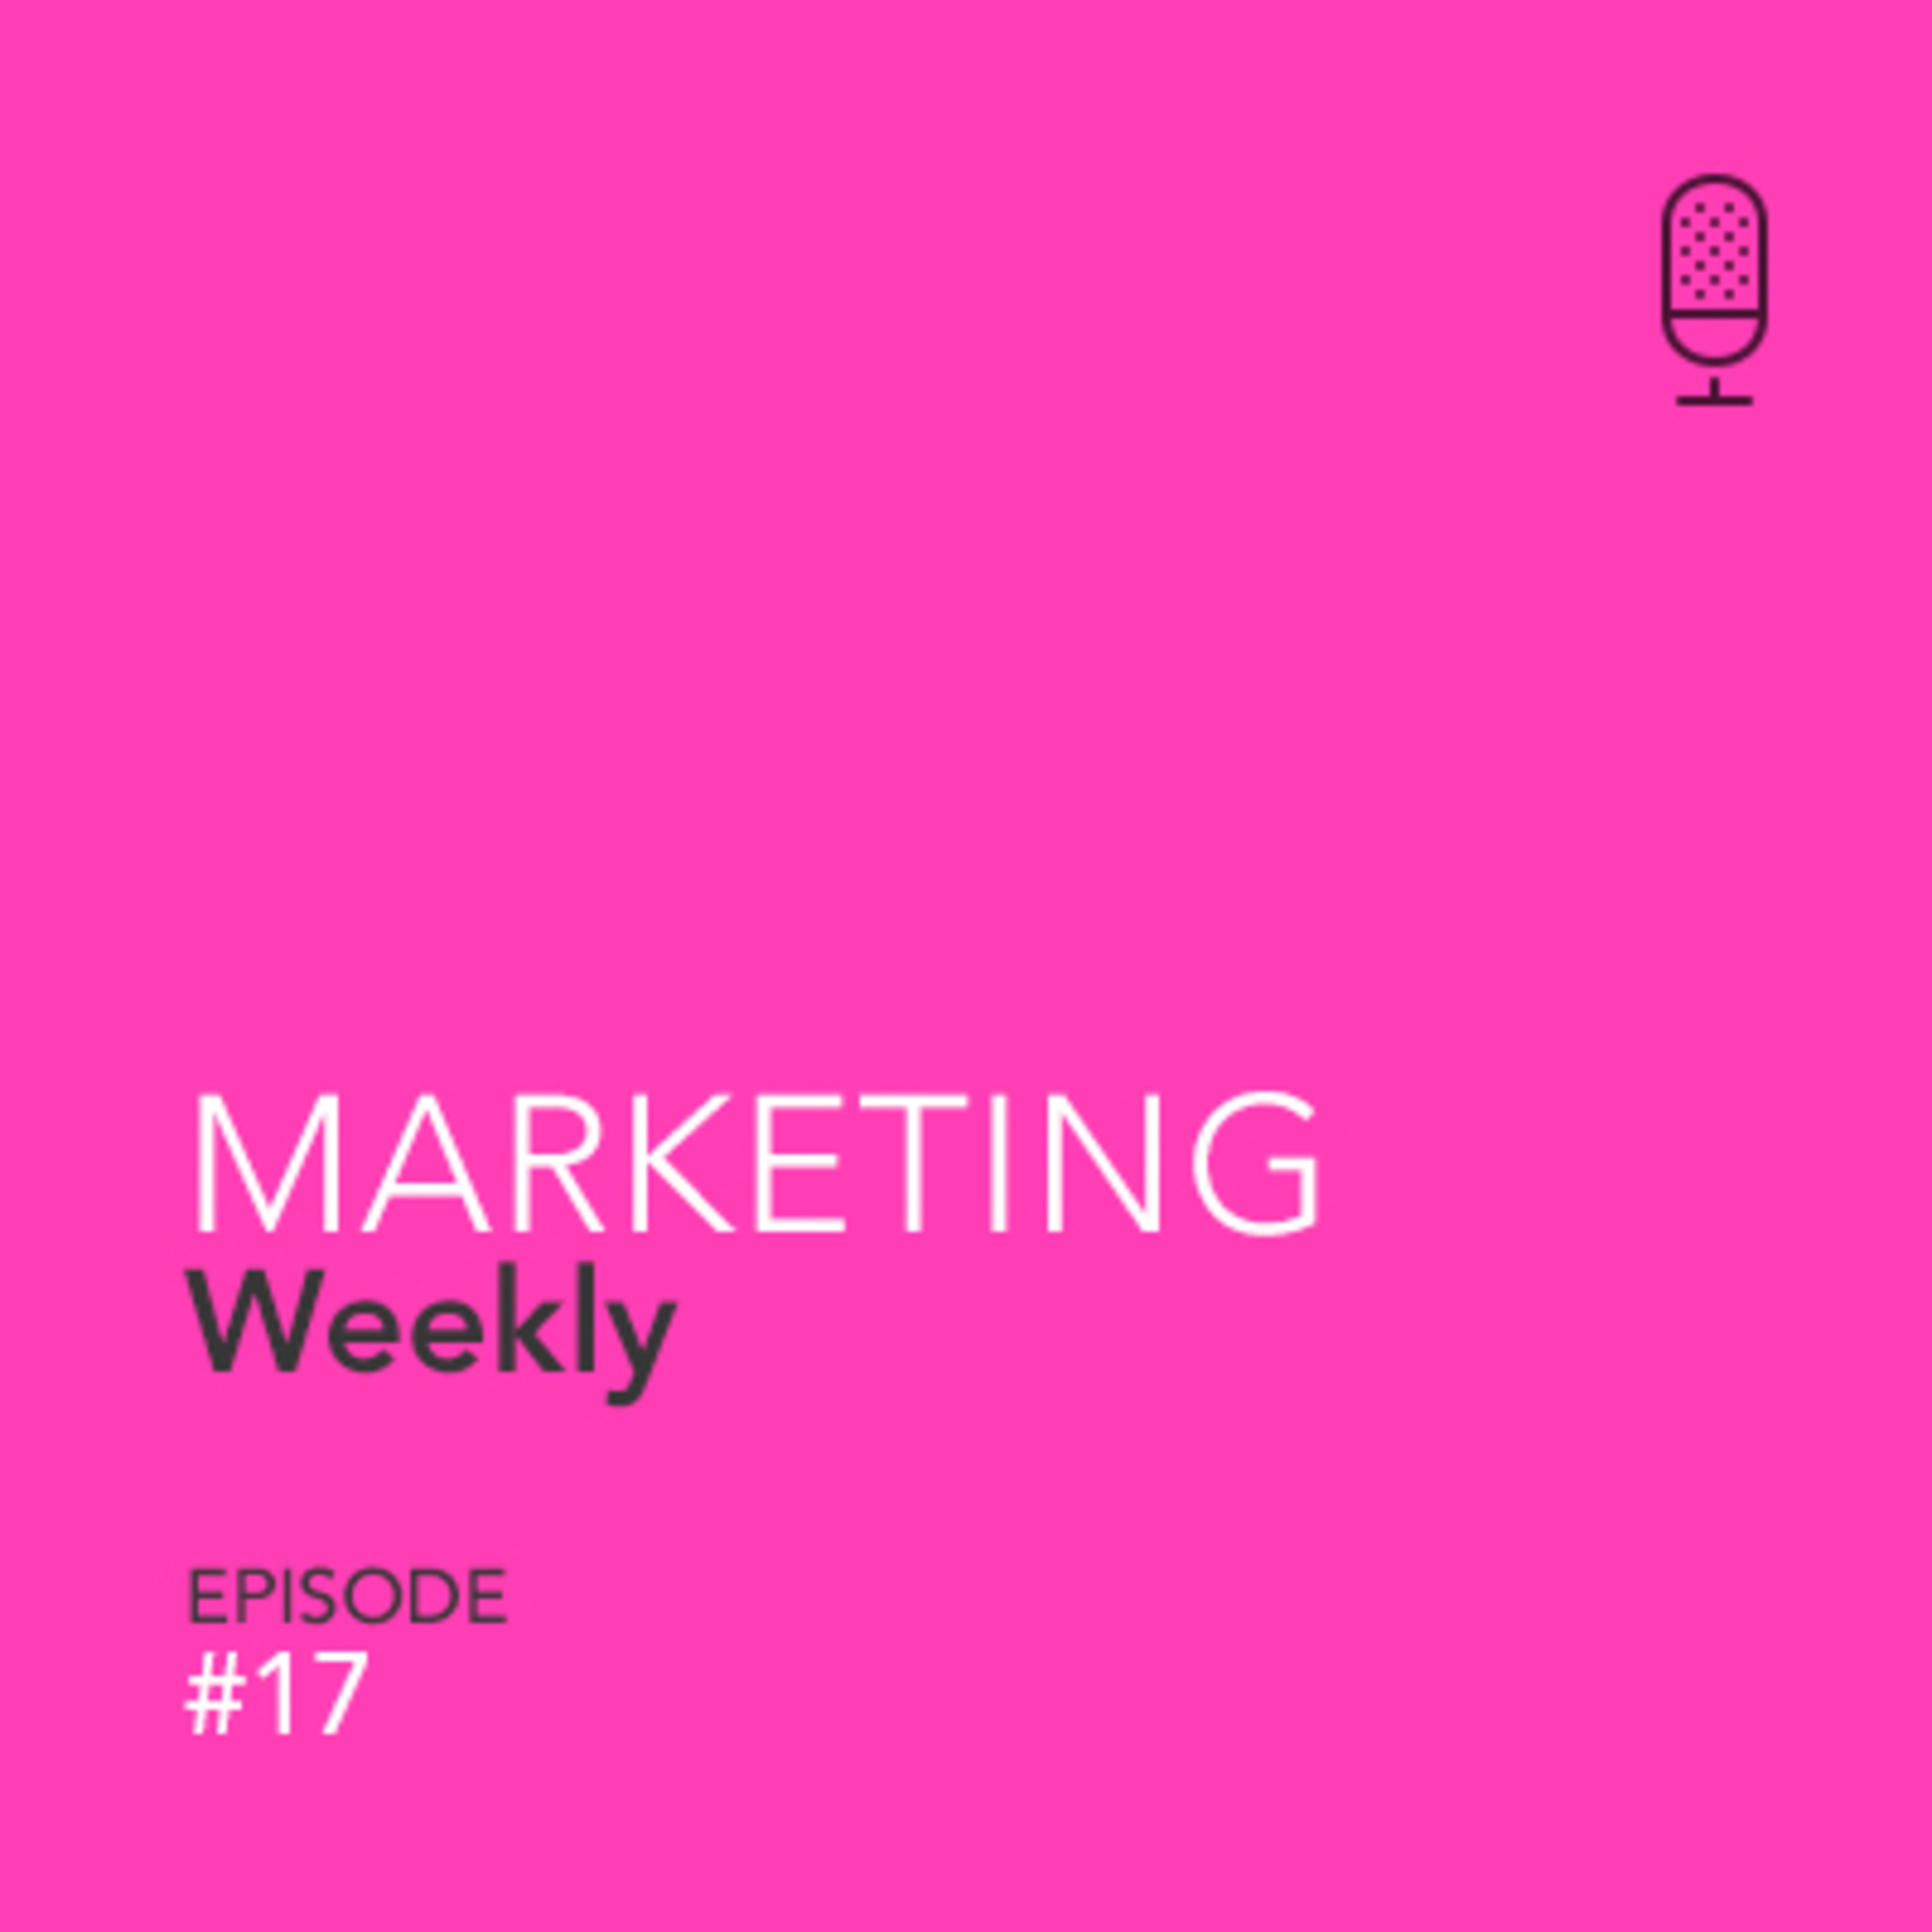 Marketing W17 - Adding some more analytical talk to our lives.